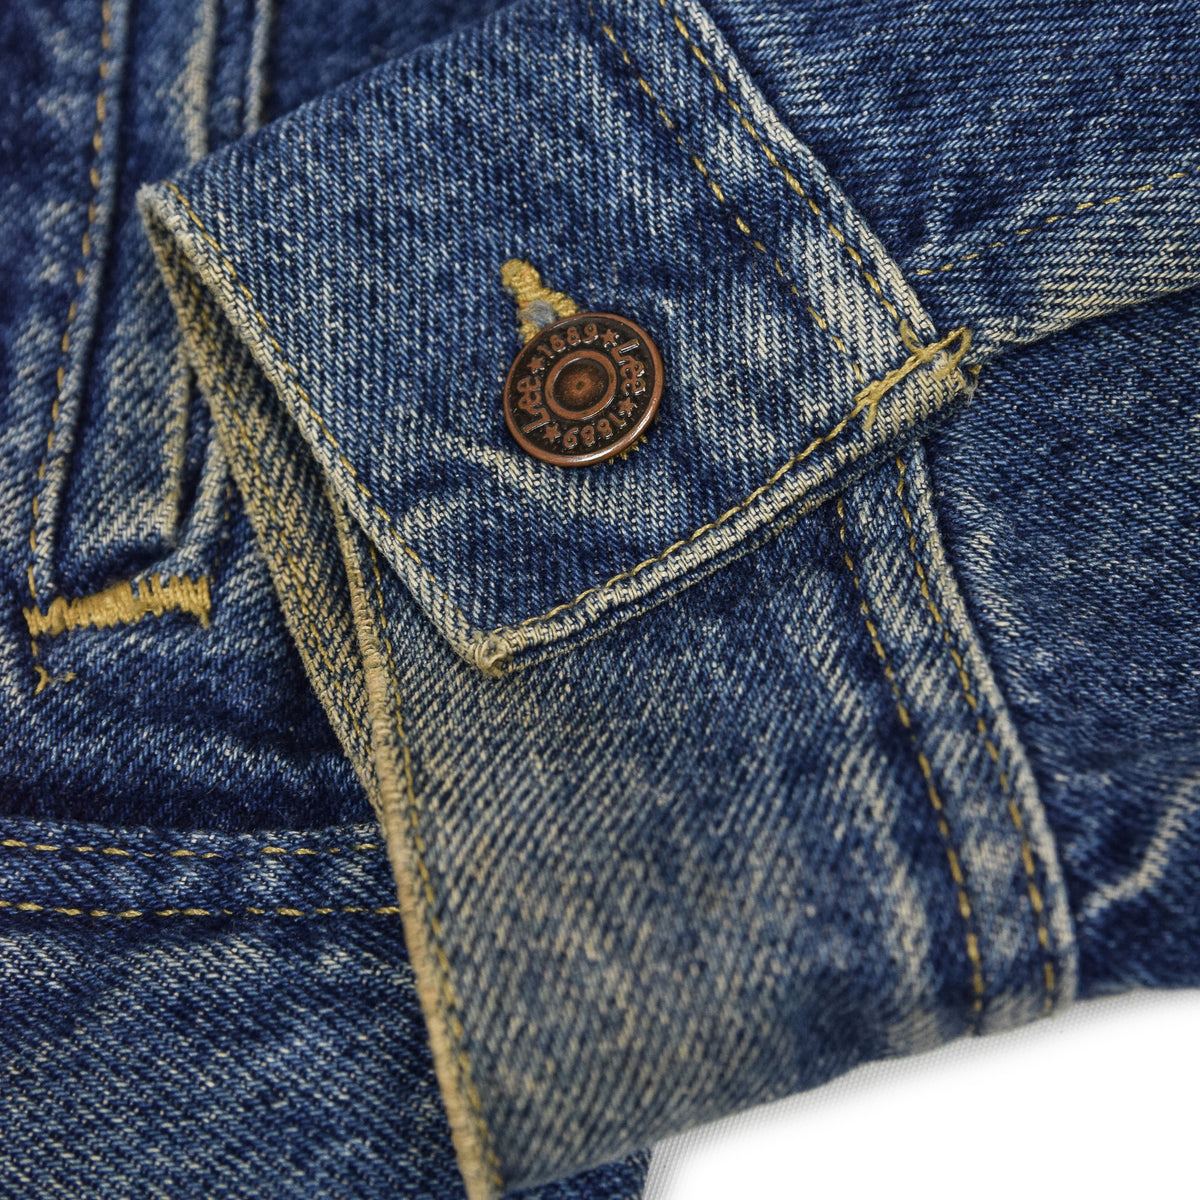 Vintage 70s Lee Washed Blue Denim Trucker Style Basic Jacket Made in USA M cuff button